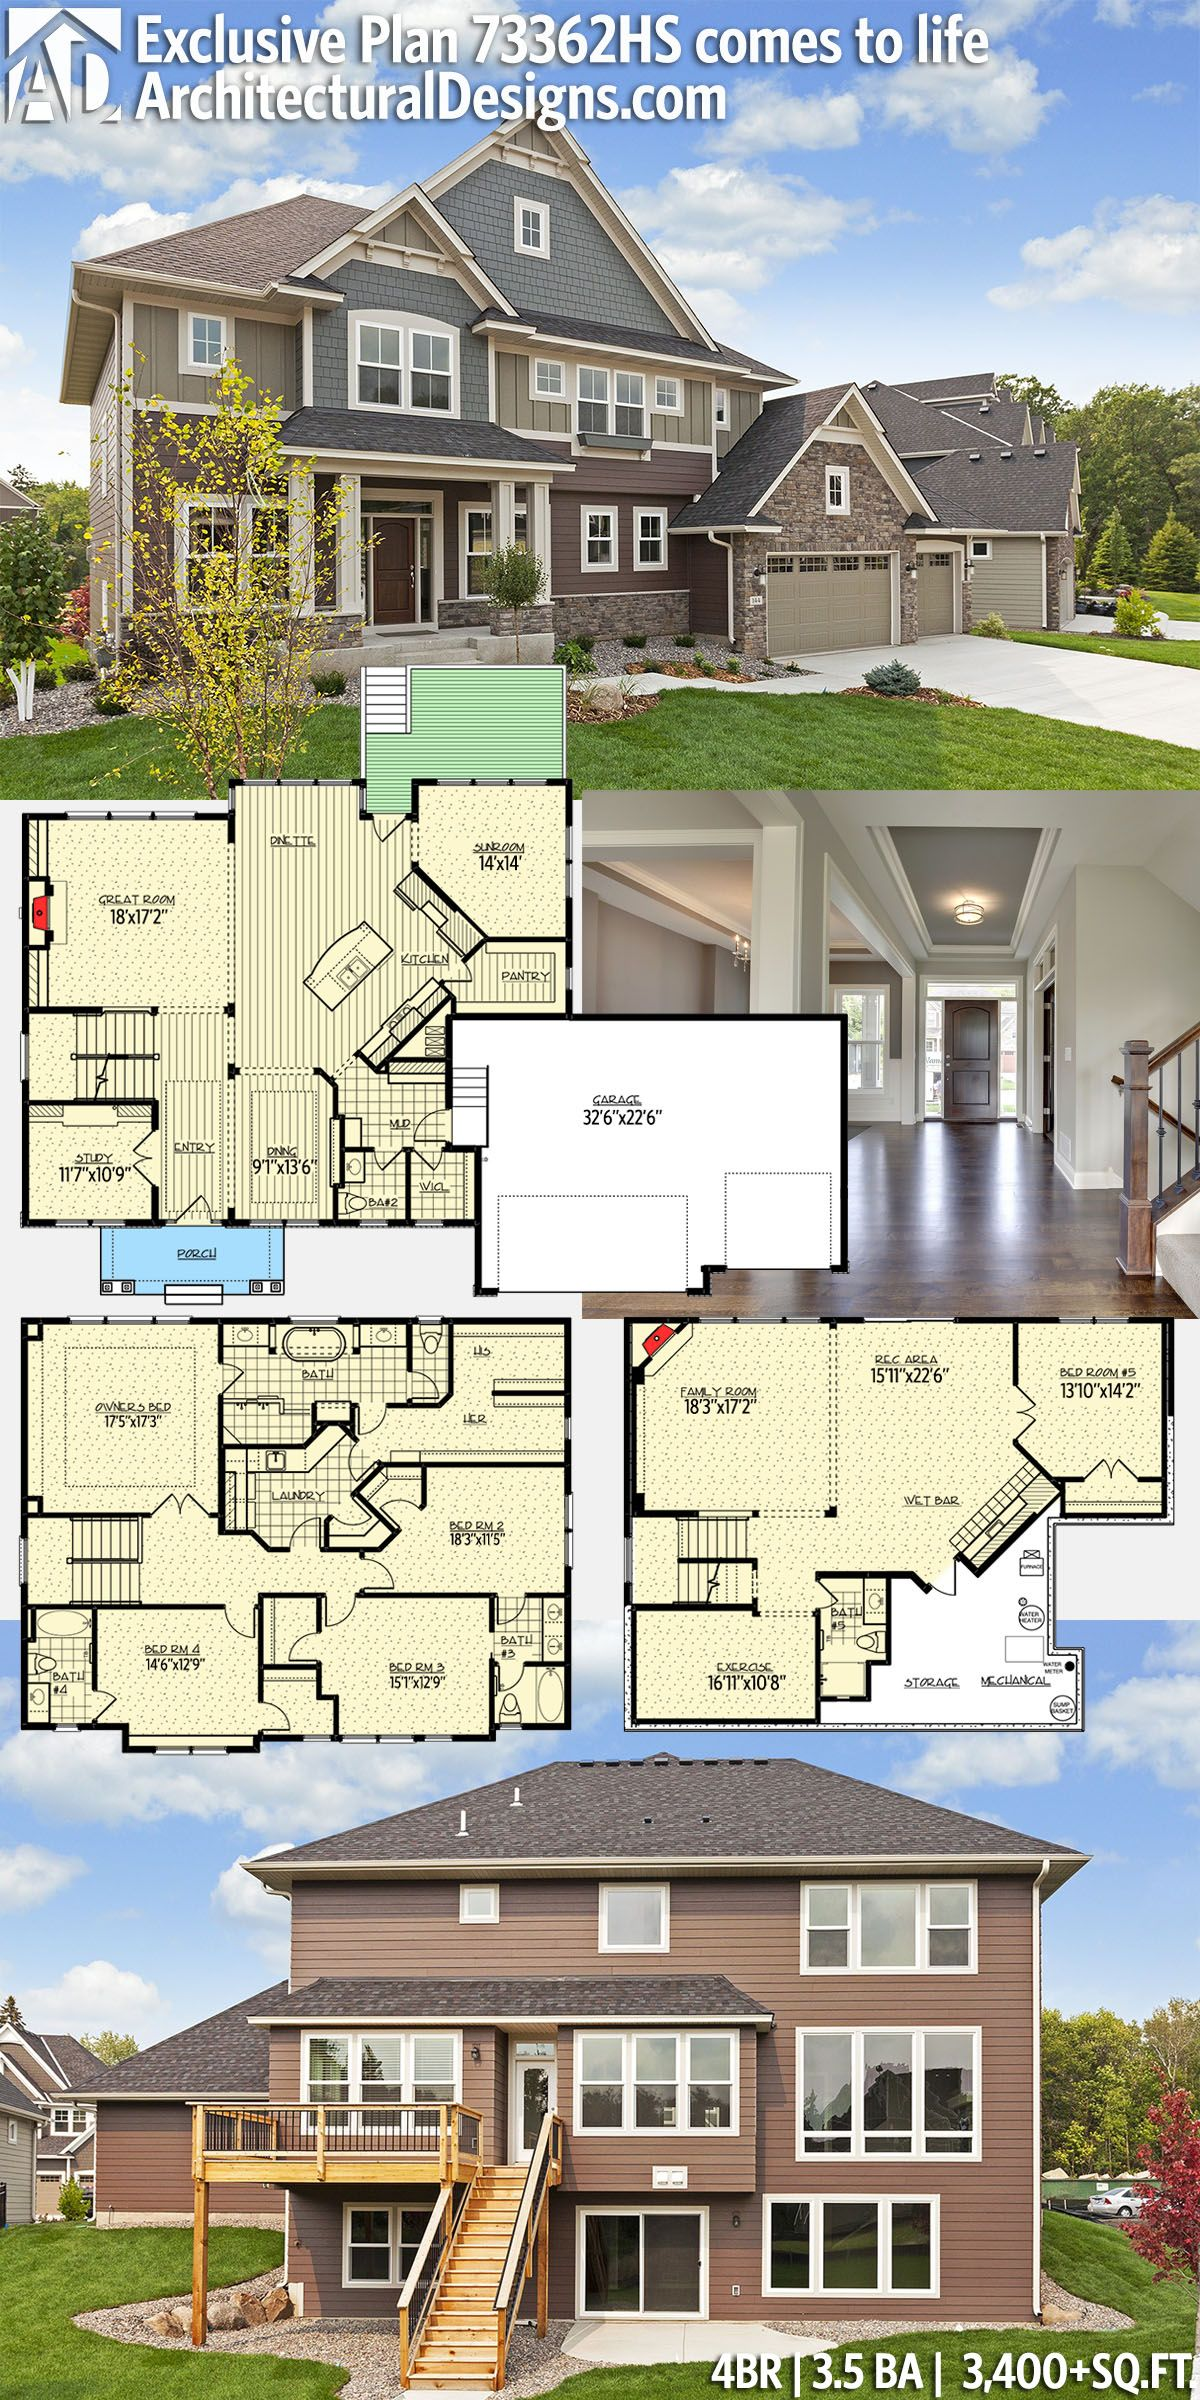 Architectural Designs Exclusive House Plan 73362HS gives